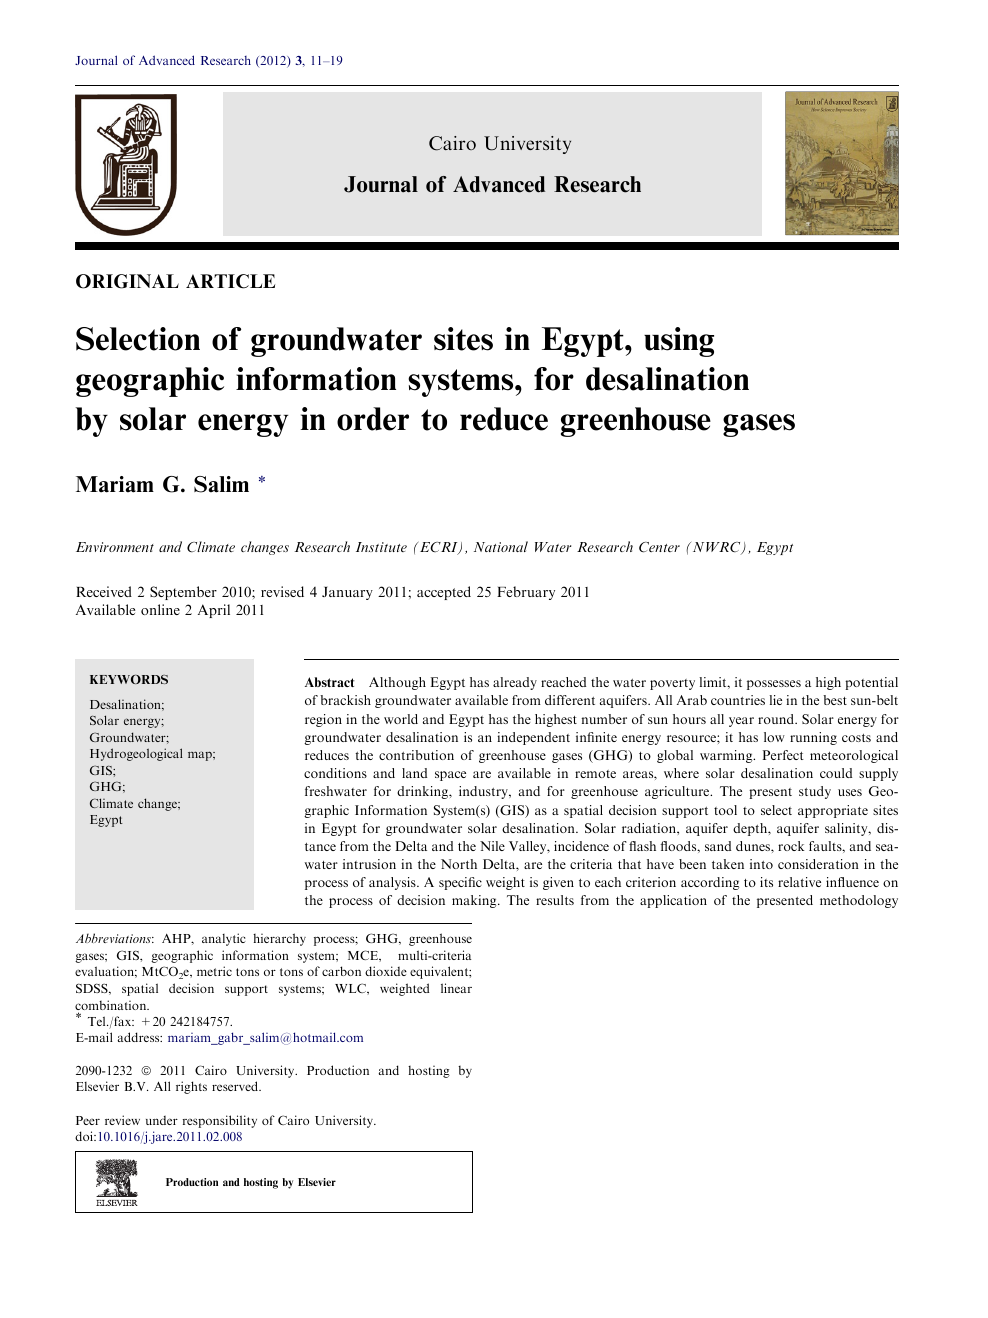 Selection of groundwater sites in Egypt, using geographic